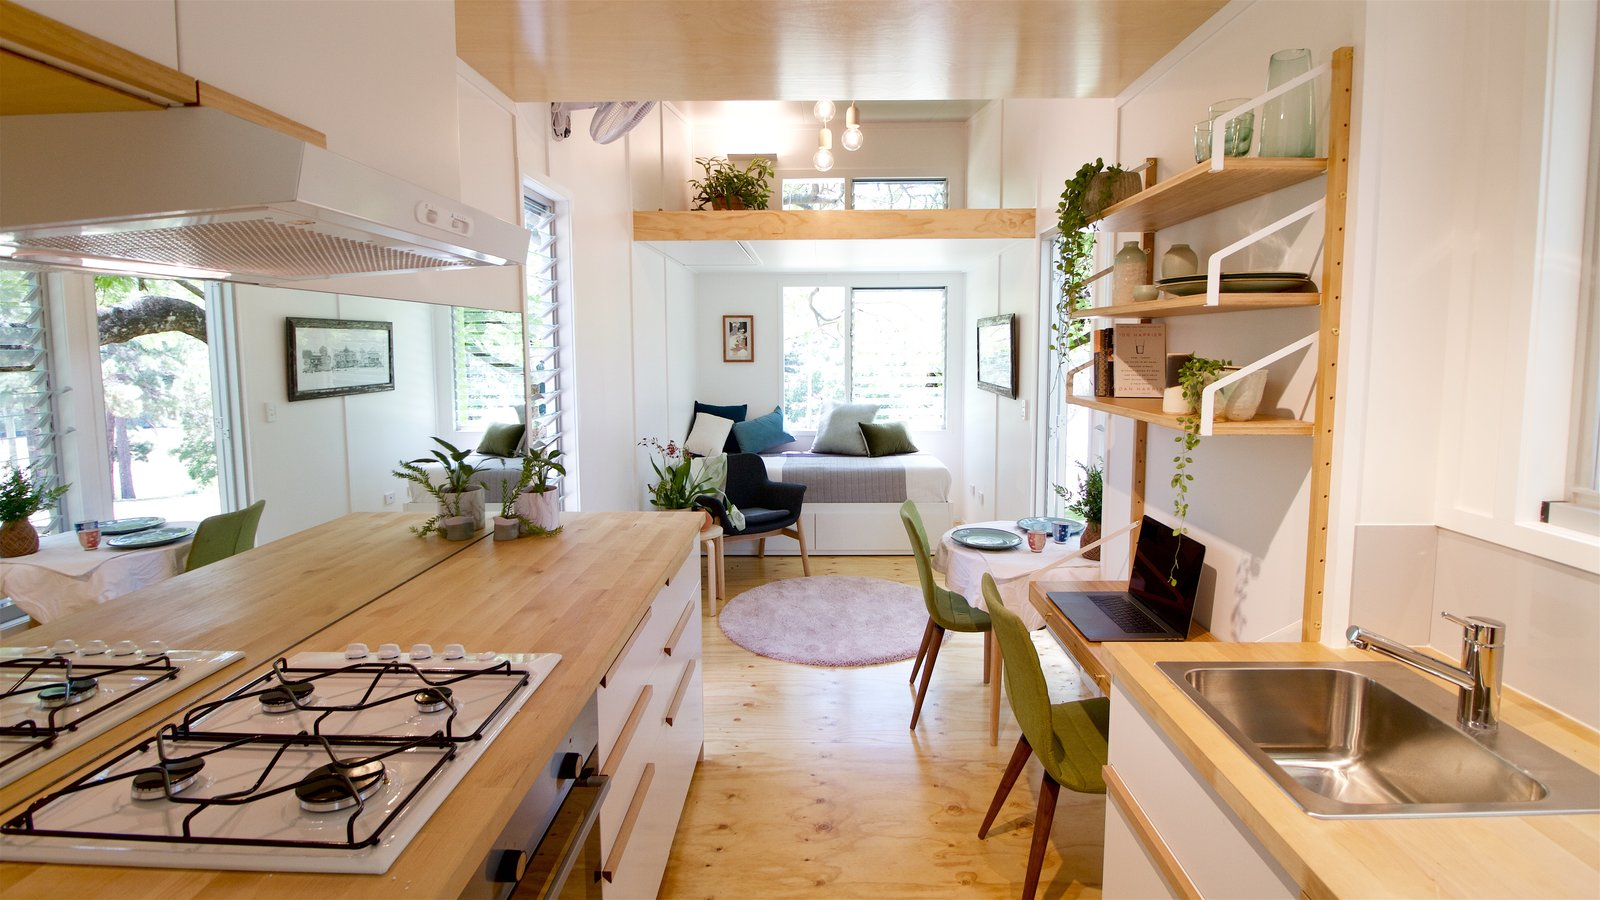 This Midcentury-Inspired Tiny House Radiates Clever Design - Dwell